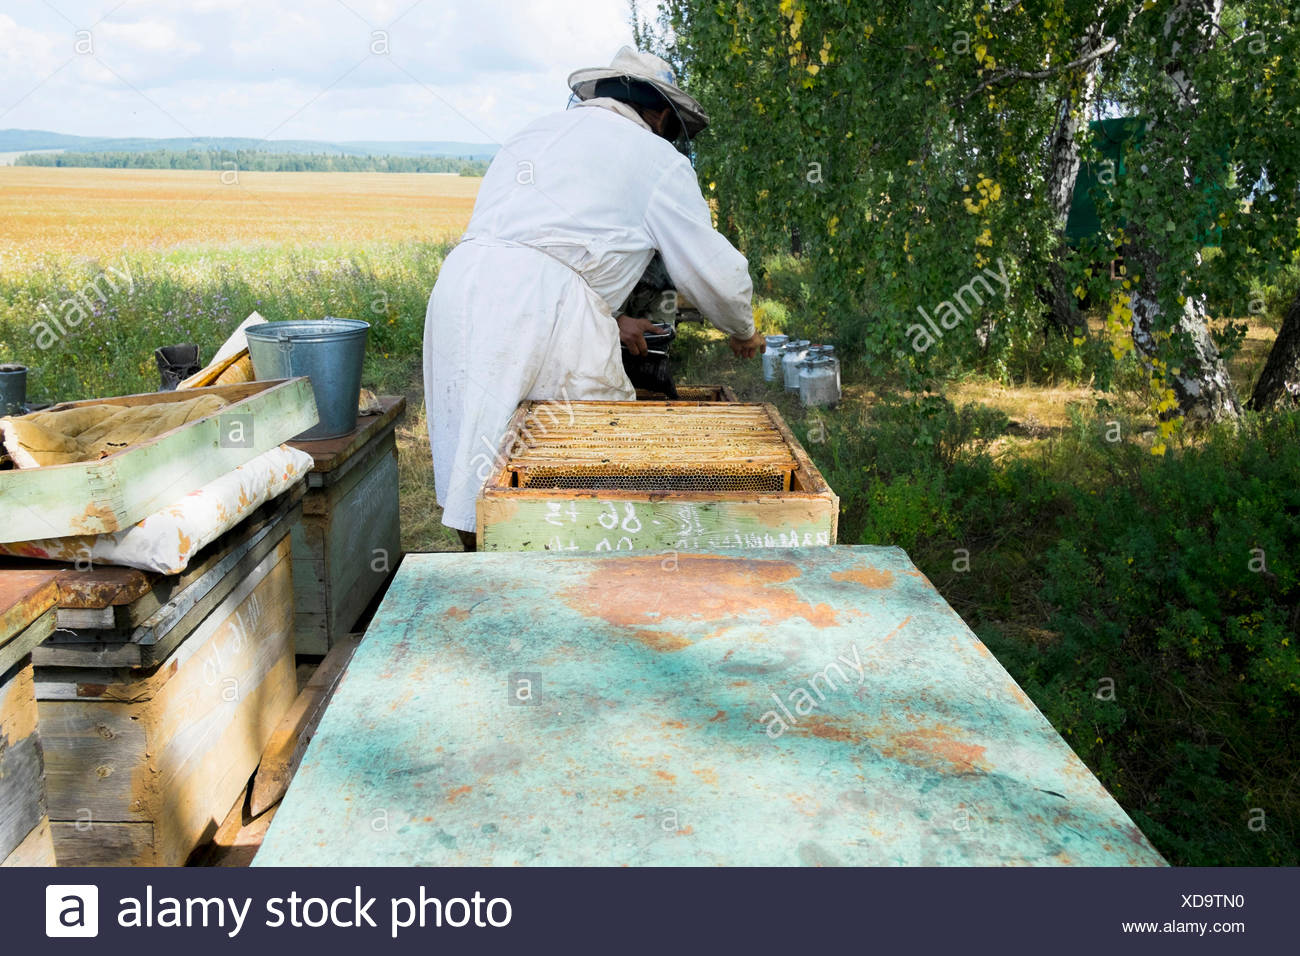 Male beekeeper monitoring apiary in field - Stock Image